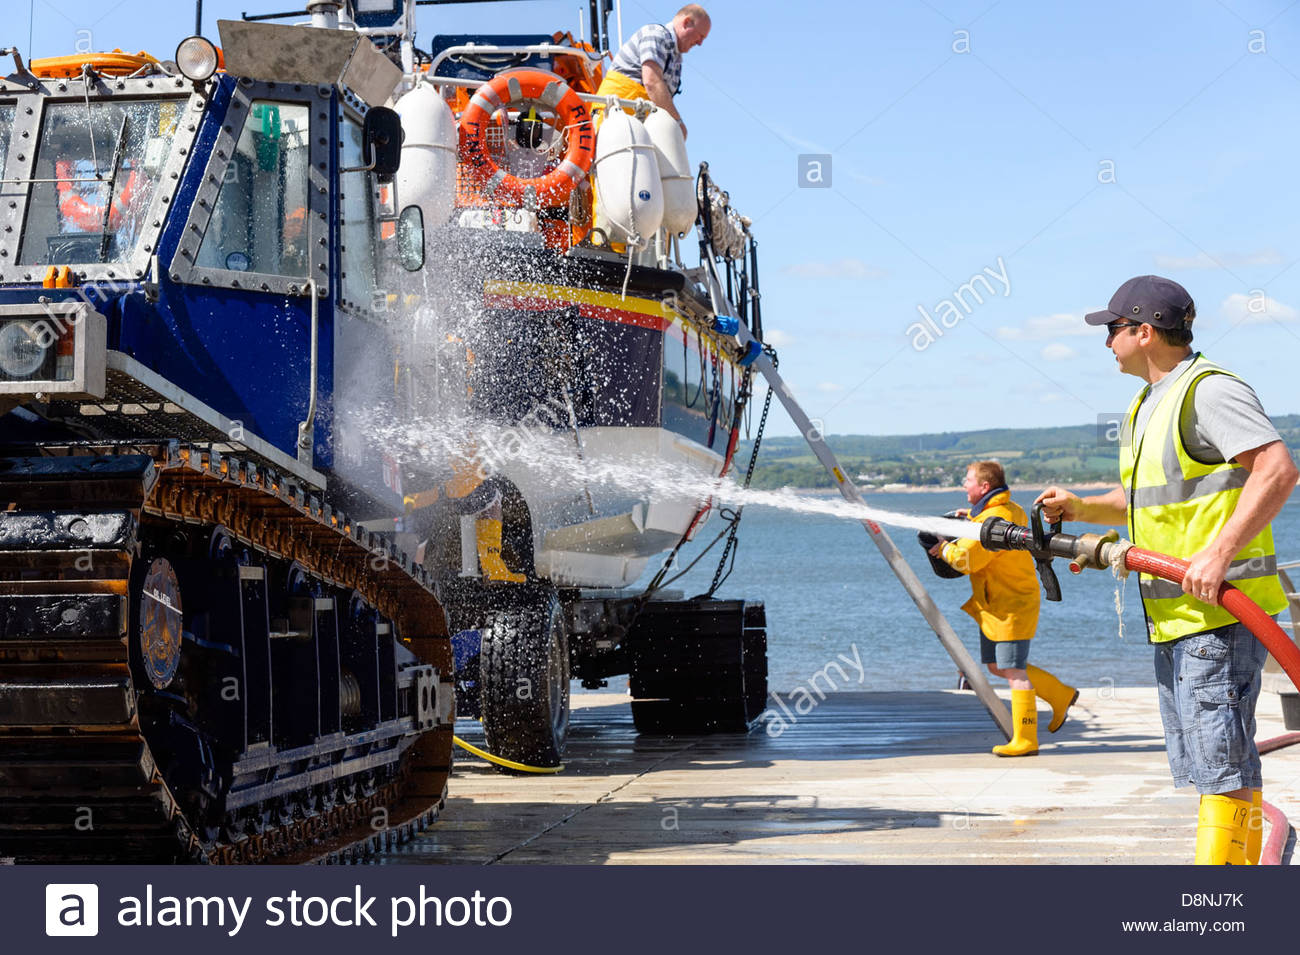 RNLI Lifeboat & tractor at Exmouth, Devon, UK. RNLI crew doing maintenance washing the lifeboat. - Stock Image